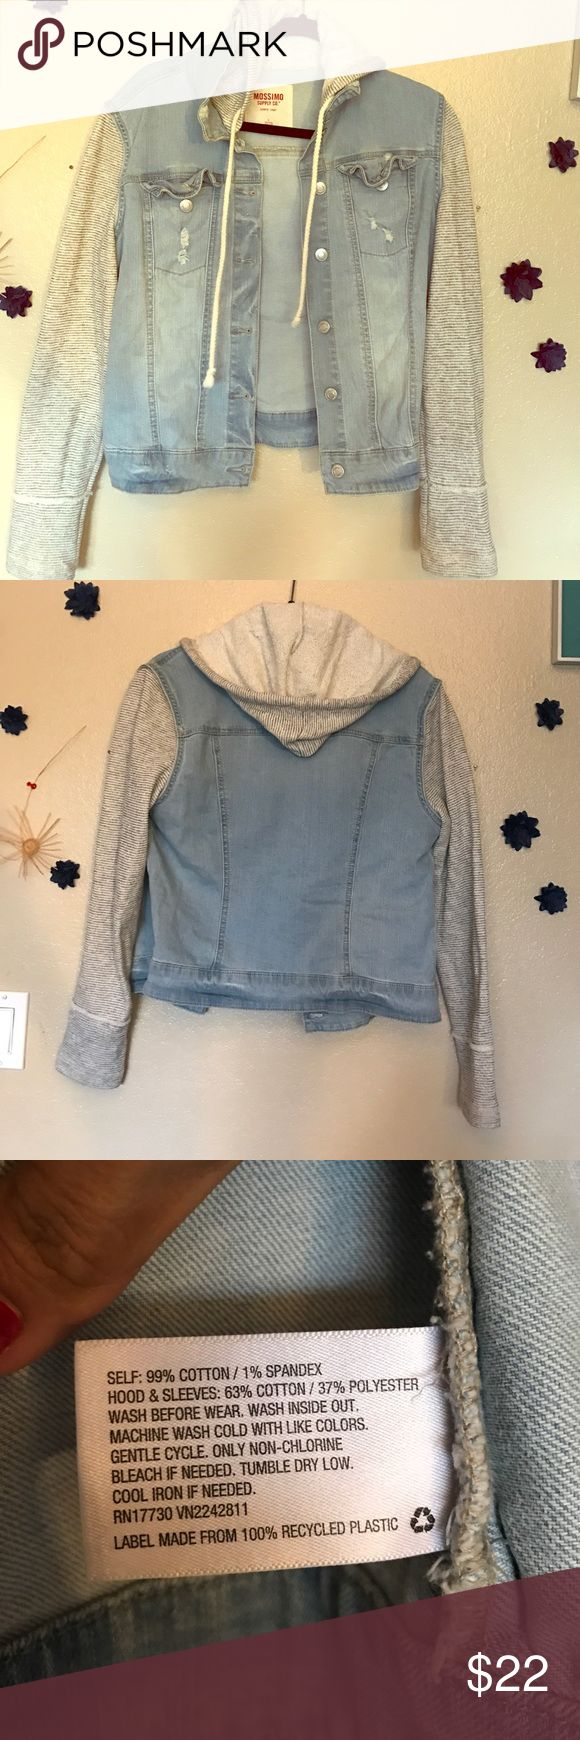 Cute jean jacket Perfect for spring! Sweater material for the arms and hood, jean material for the body. Great condition only wore a couple of times, turns out I'm not a jean jacket kind of girl! I tried though 😂 Mossimo Supply Co Jackets & Coats Jean Jackets